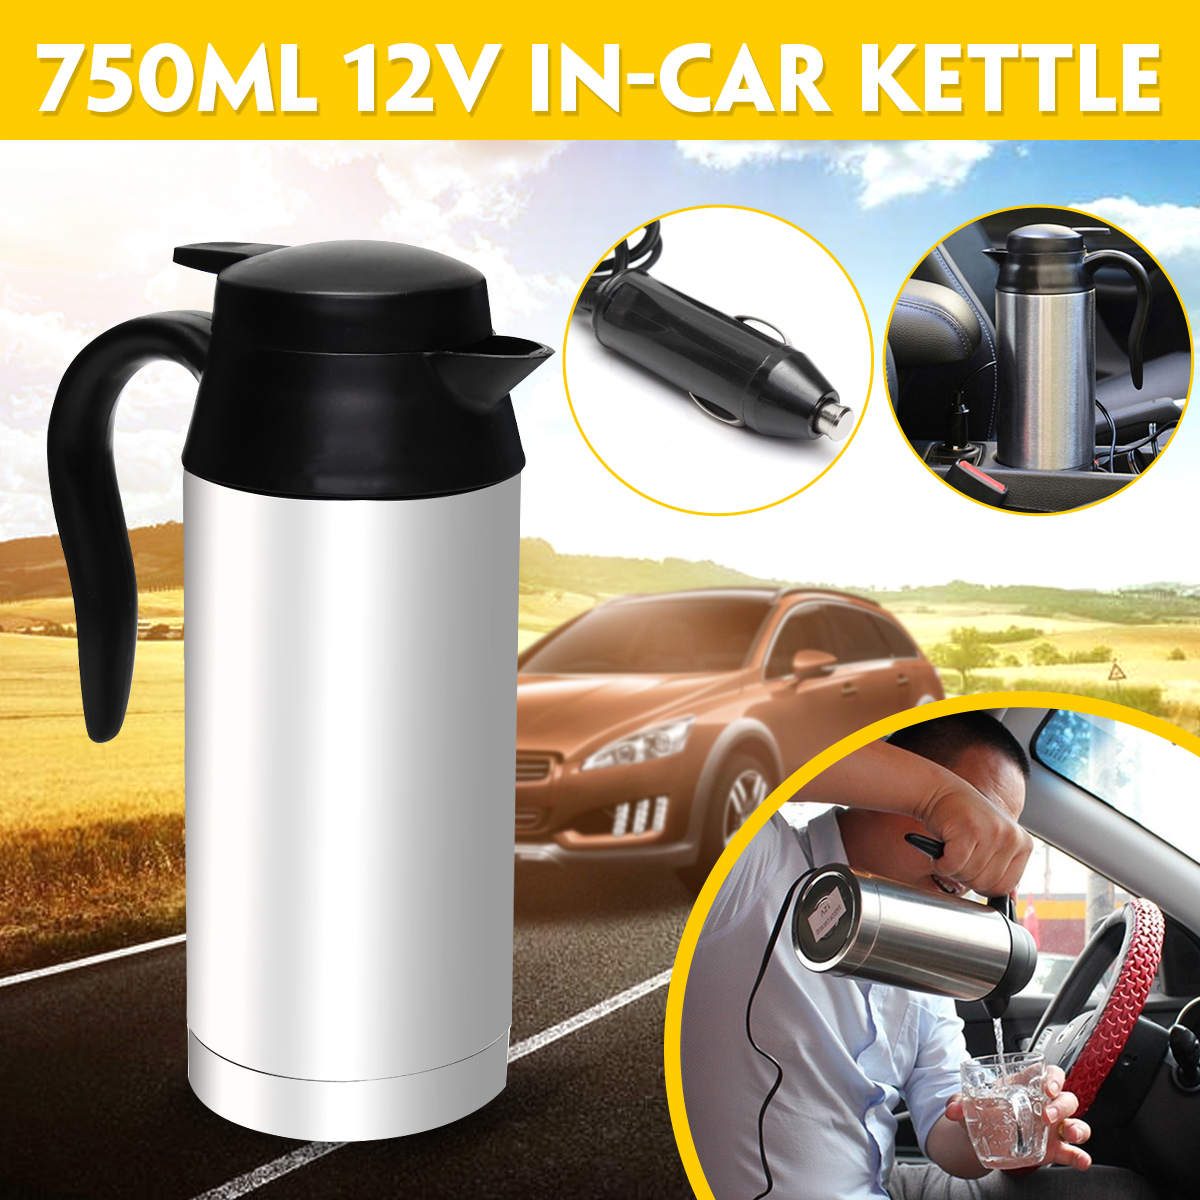 купить 12V Electric Kettle 750ml Stainless Steel In-Car Travel Trip Coffee Tea Heated Mug Motor Hot Water For Car Or Truck Use